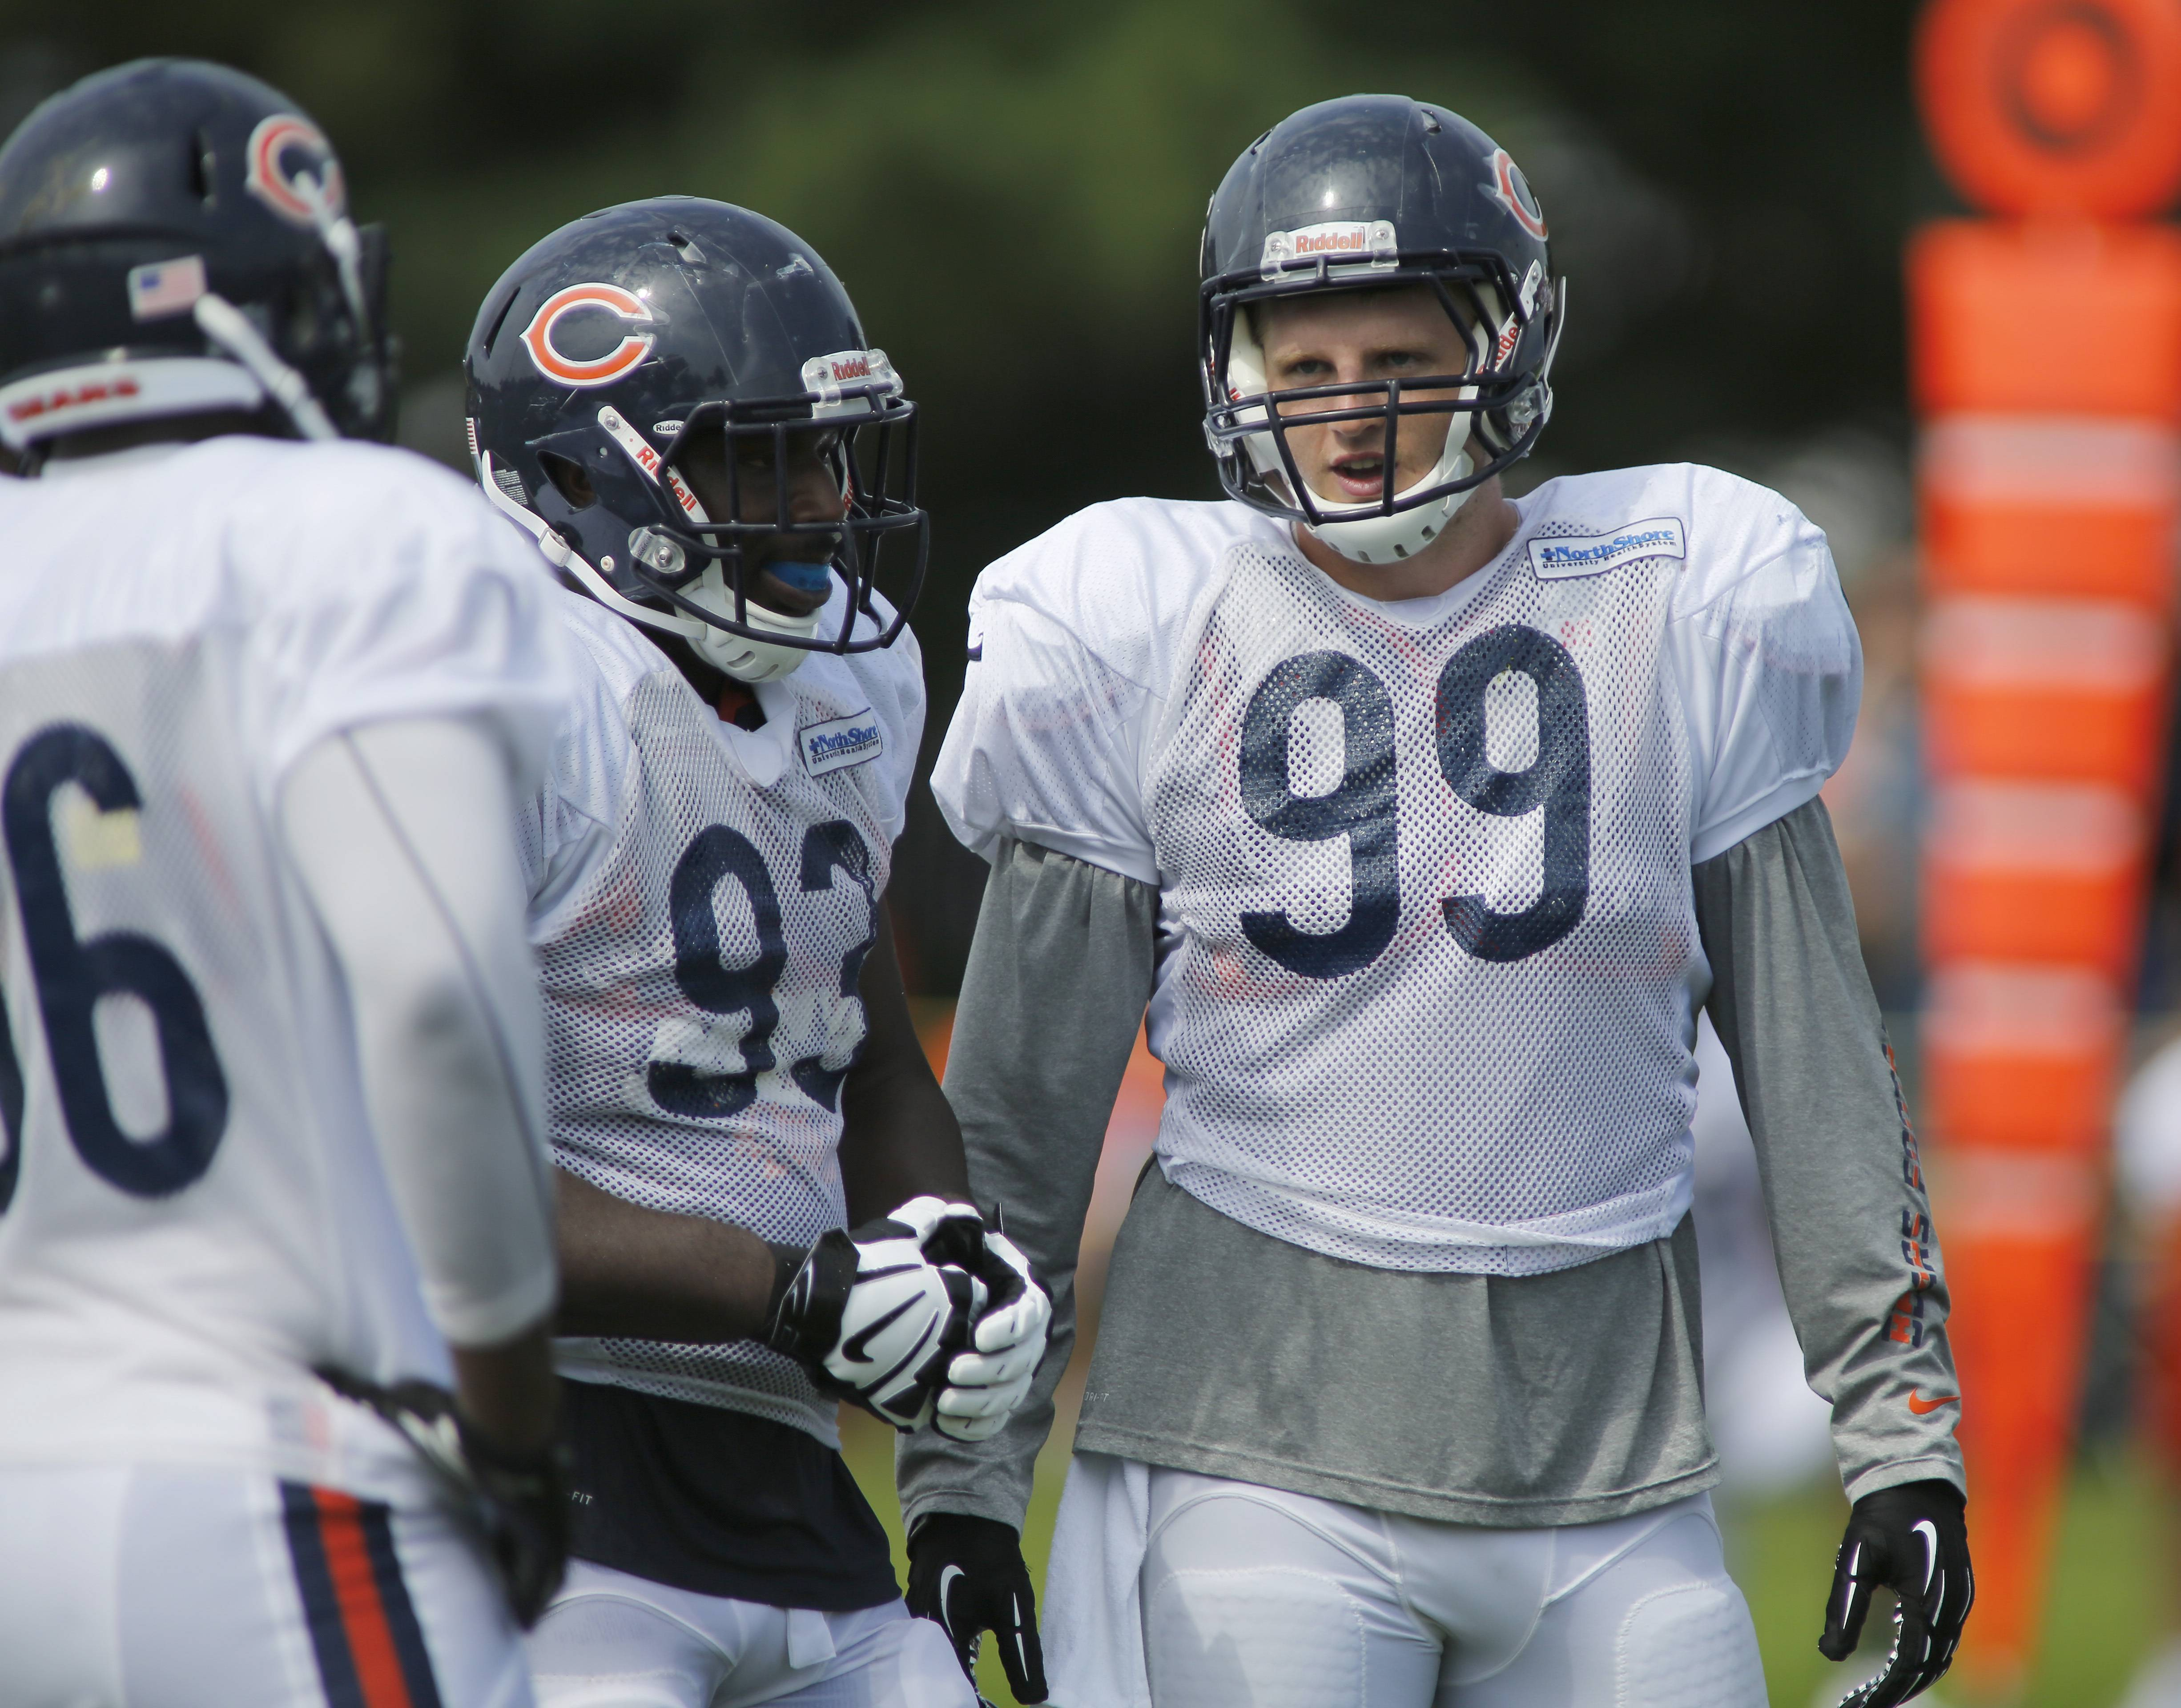 Bears defensive end Shea McClellin (99) will be shifted to a linebacker position, where he is expected to compete for a role as strongside linebacker or middle linebacker.